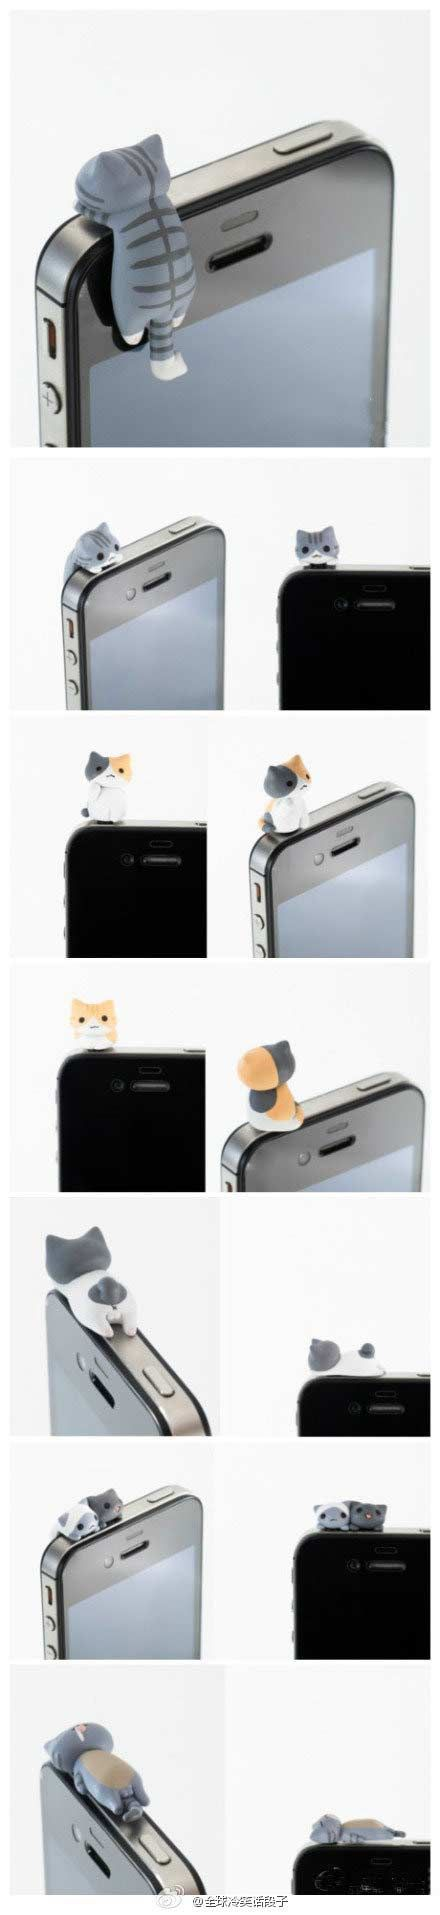 iCat [Earphone Jack Cover/ Plug] for iPhone | iCat